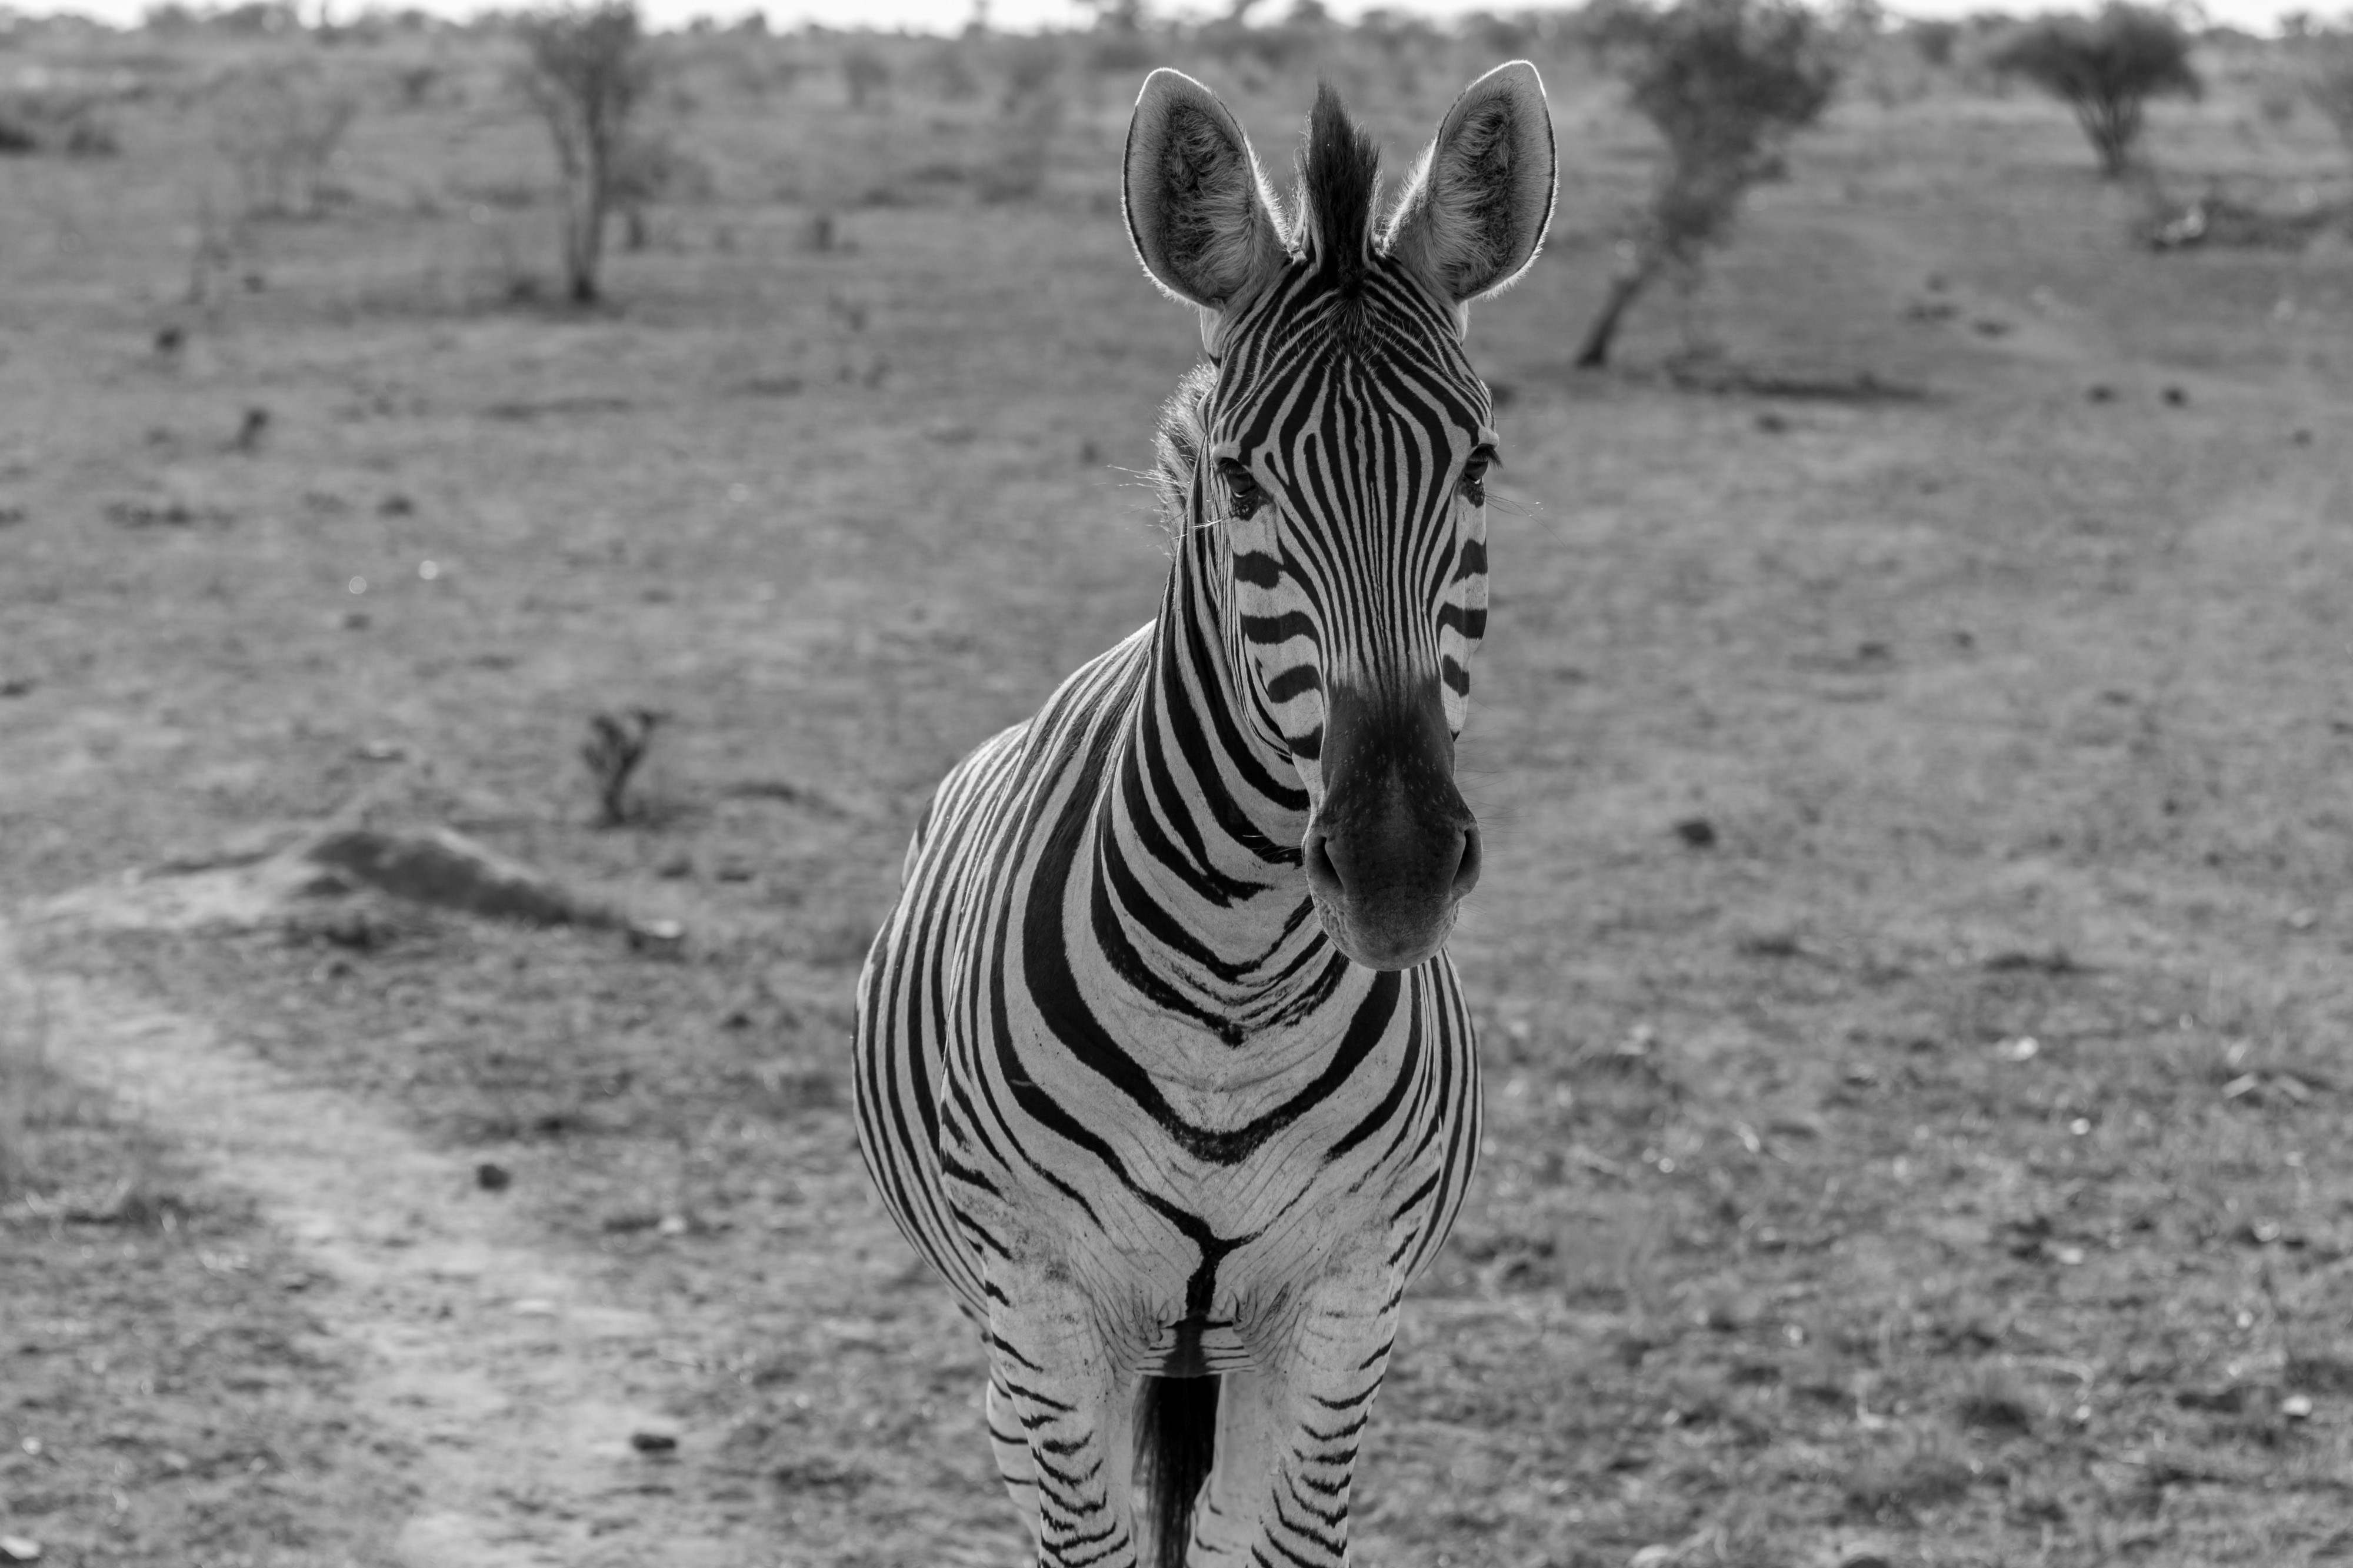 Black and white picture of a zebra looking straight into the camera in a grassy field.